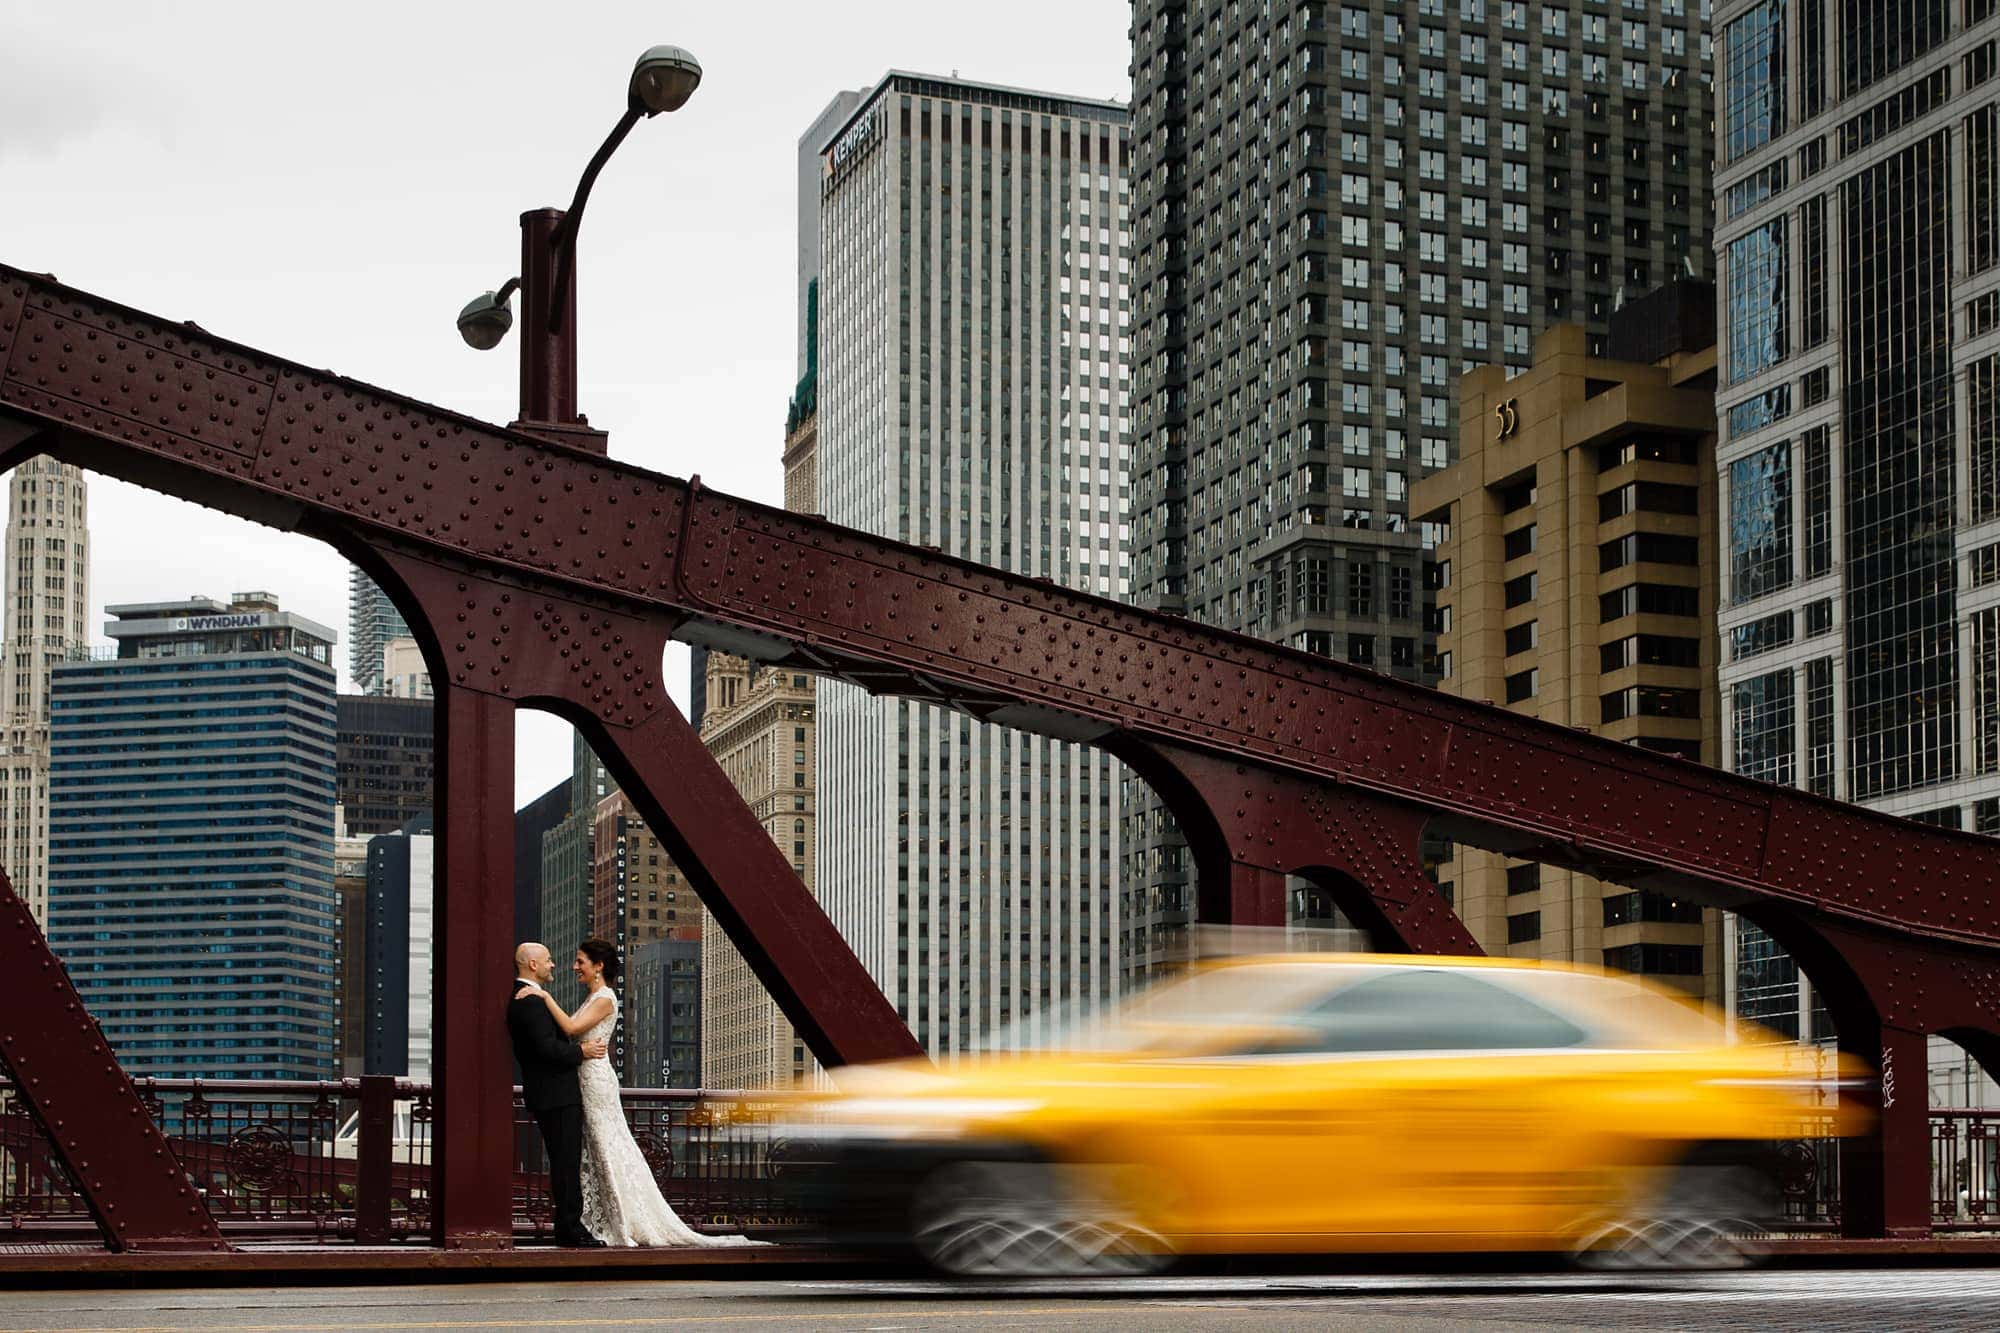 Christina and Brad share a moment together on their wedding day near the State Street bridge as a taxi drives by